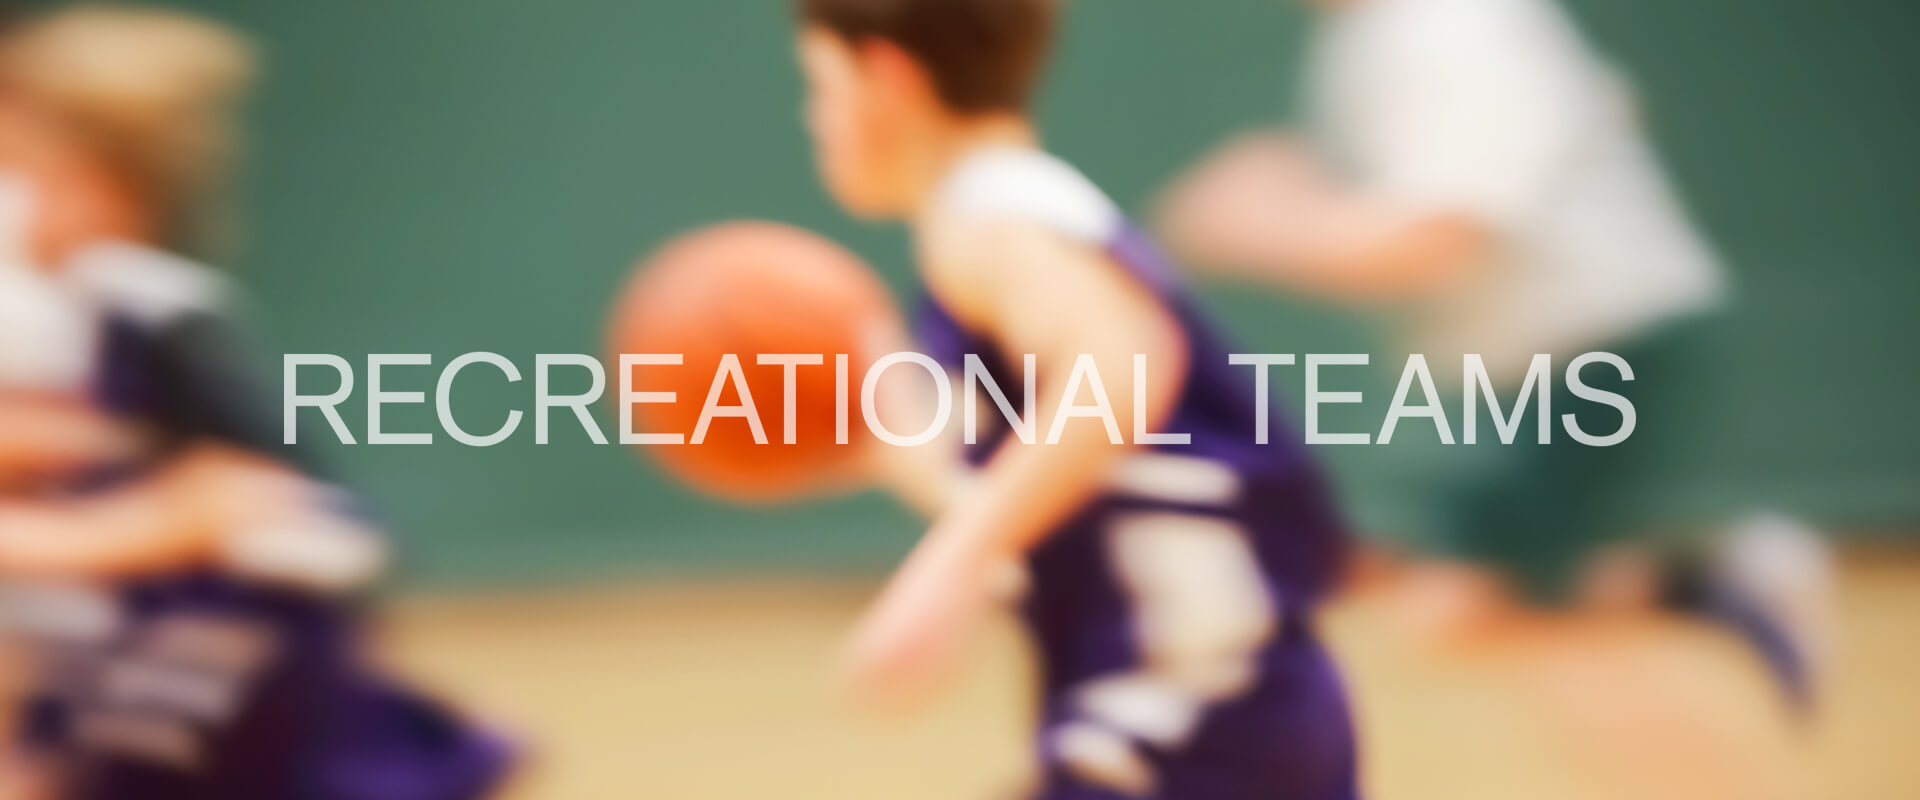 RECREATIONAL TEAMS